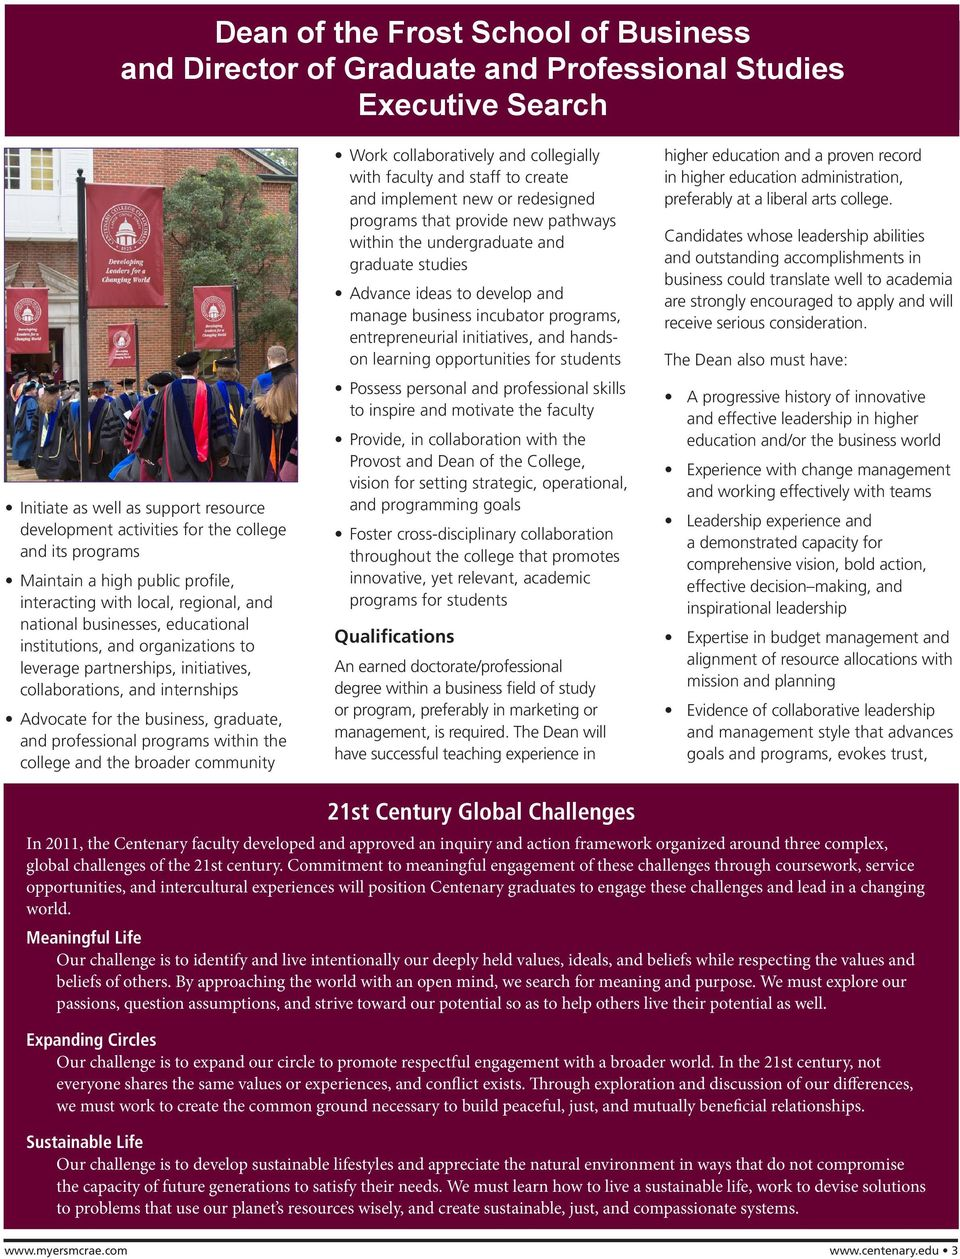 broader community Work collaboratively and collegially with faculty and staff to create and implement new or redesigned programs that provide new pathways within the undergraduate and graduate